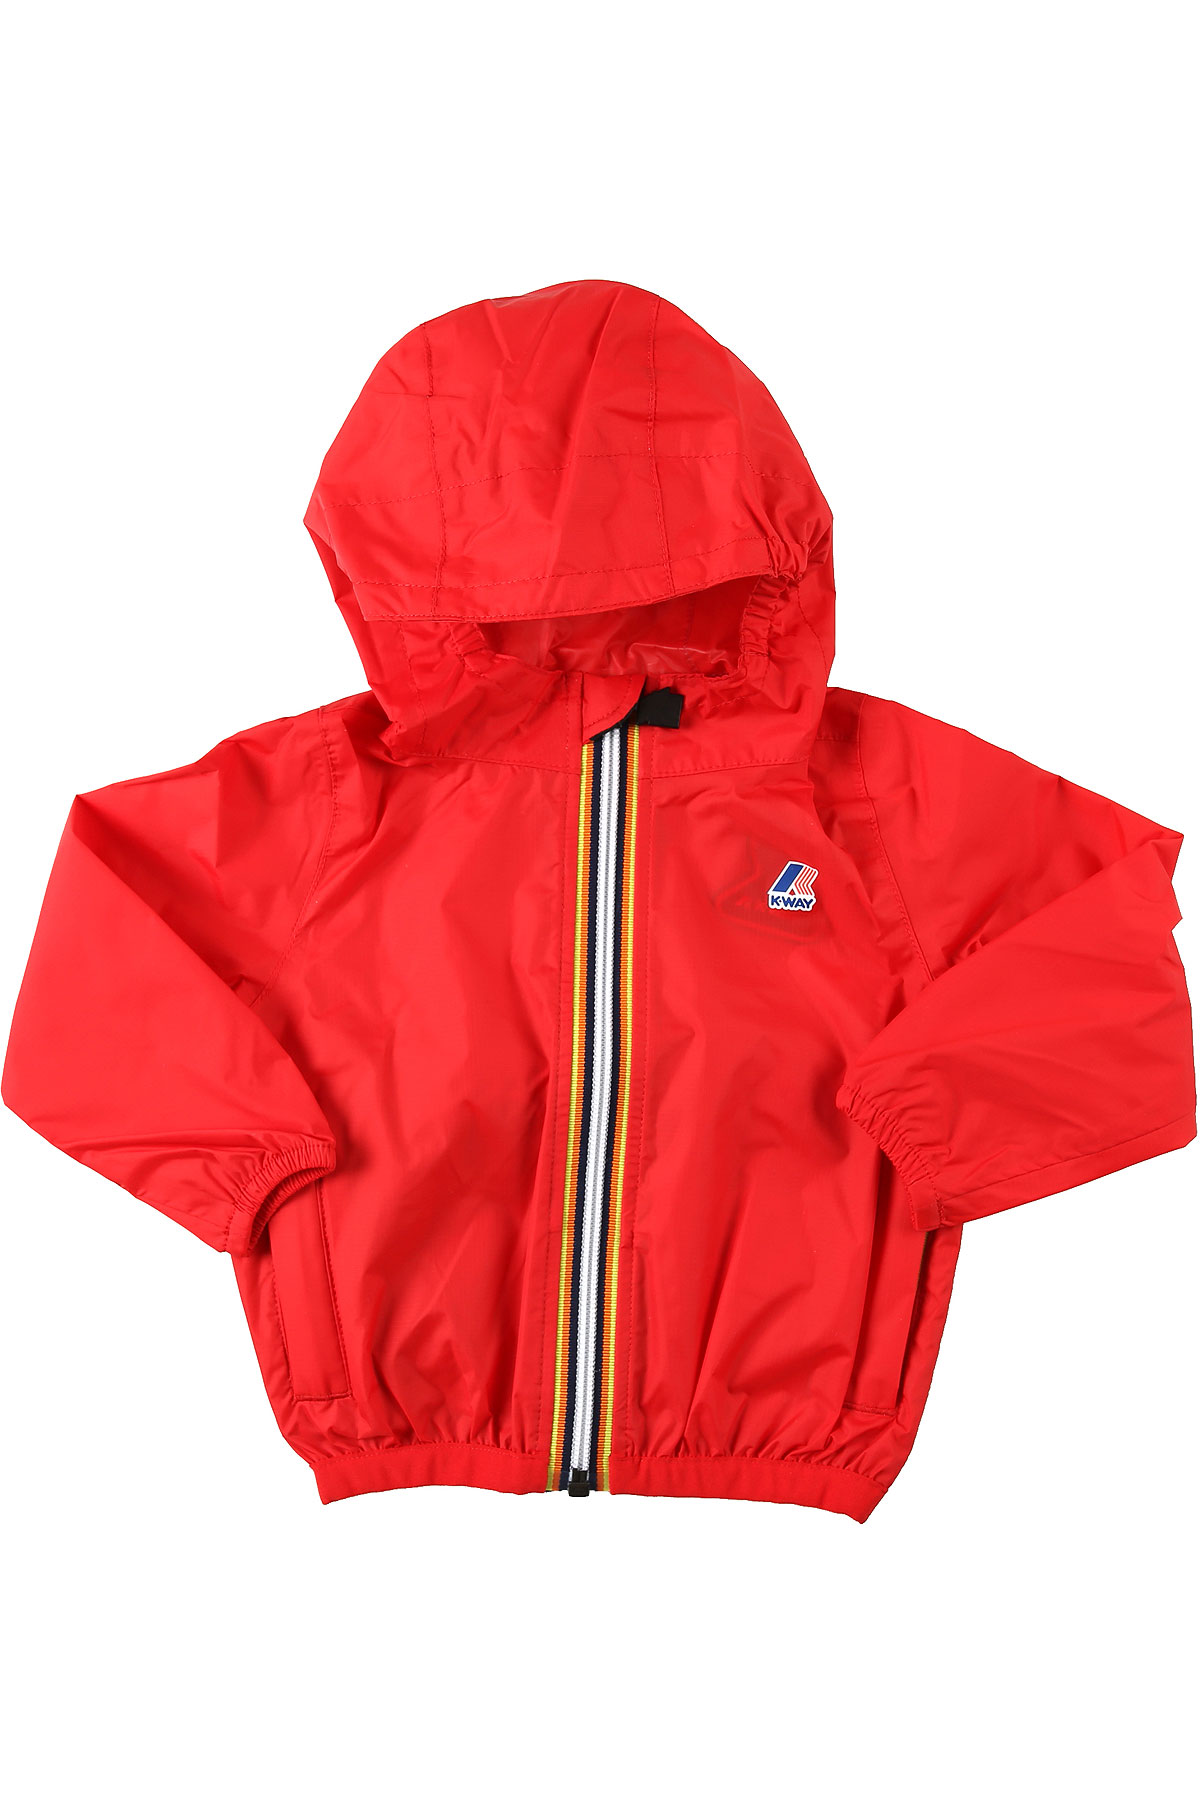 K-Way Baby Jacket for Boys On Sale, Red, polyamide, 2019, 12 M 2Y